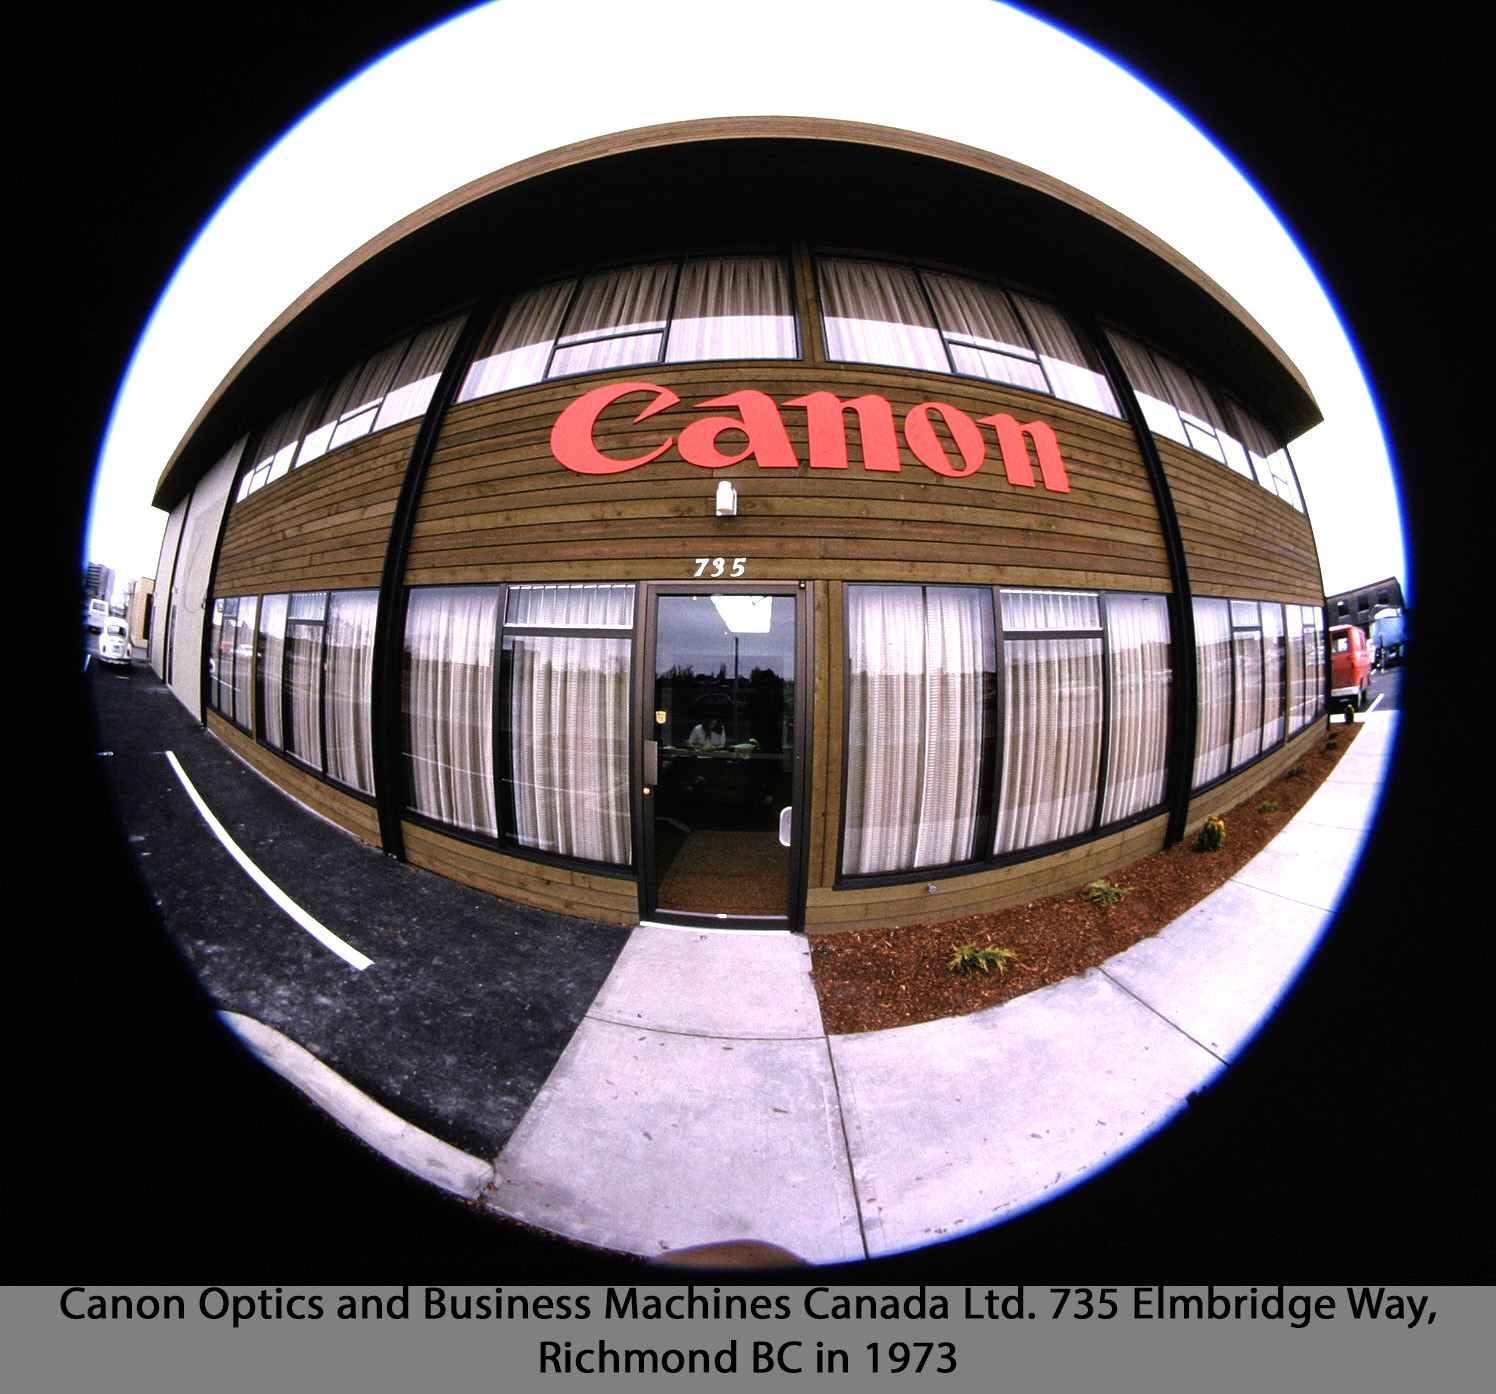 IMG_0891canon obm wix